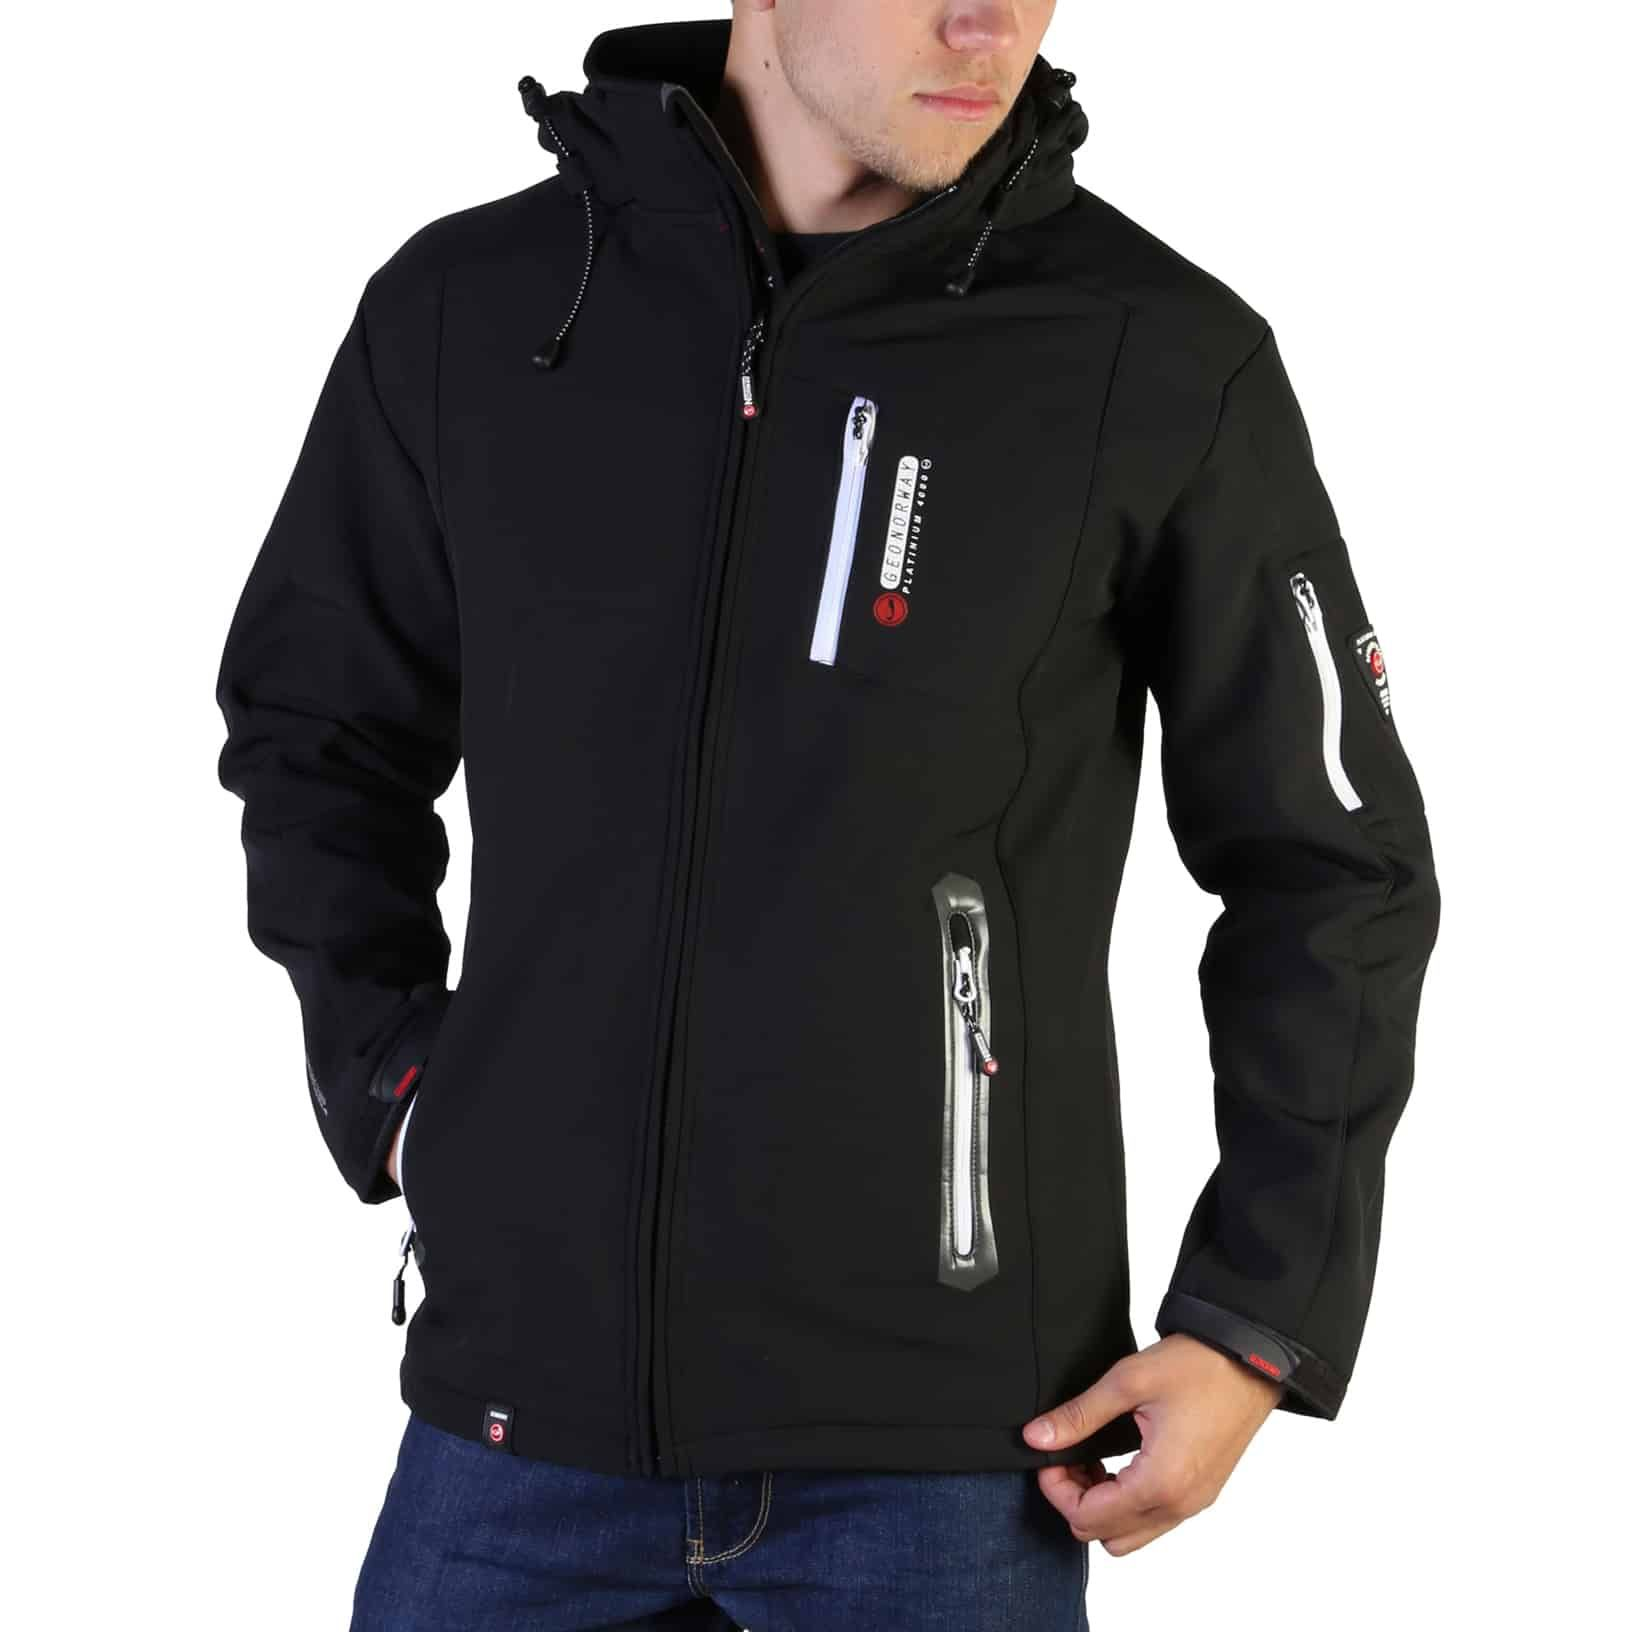 Geographical Norway – Tichri_man